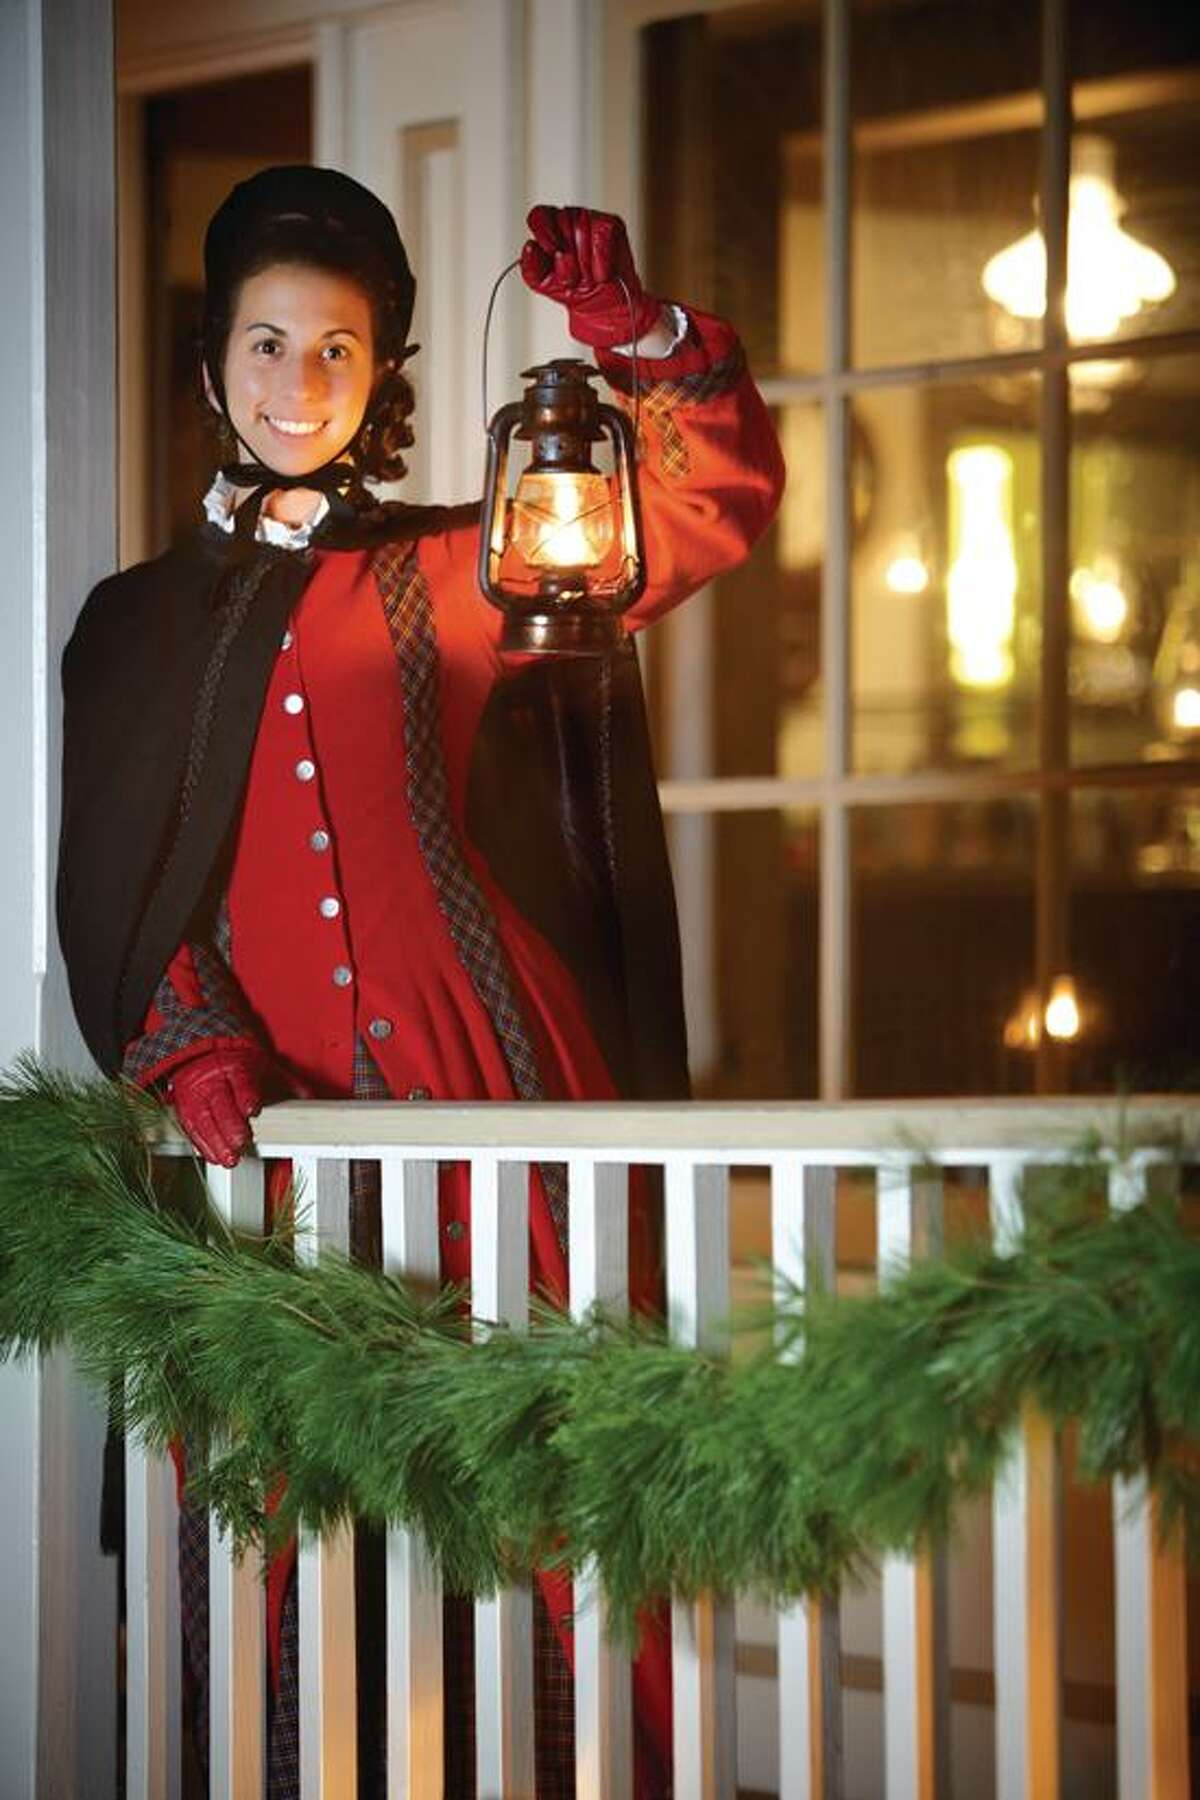 Mystic Seaport photo: Lantern Tour anyone? You can catch one tonight at Mystic Seaport.